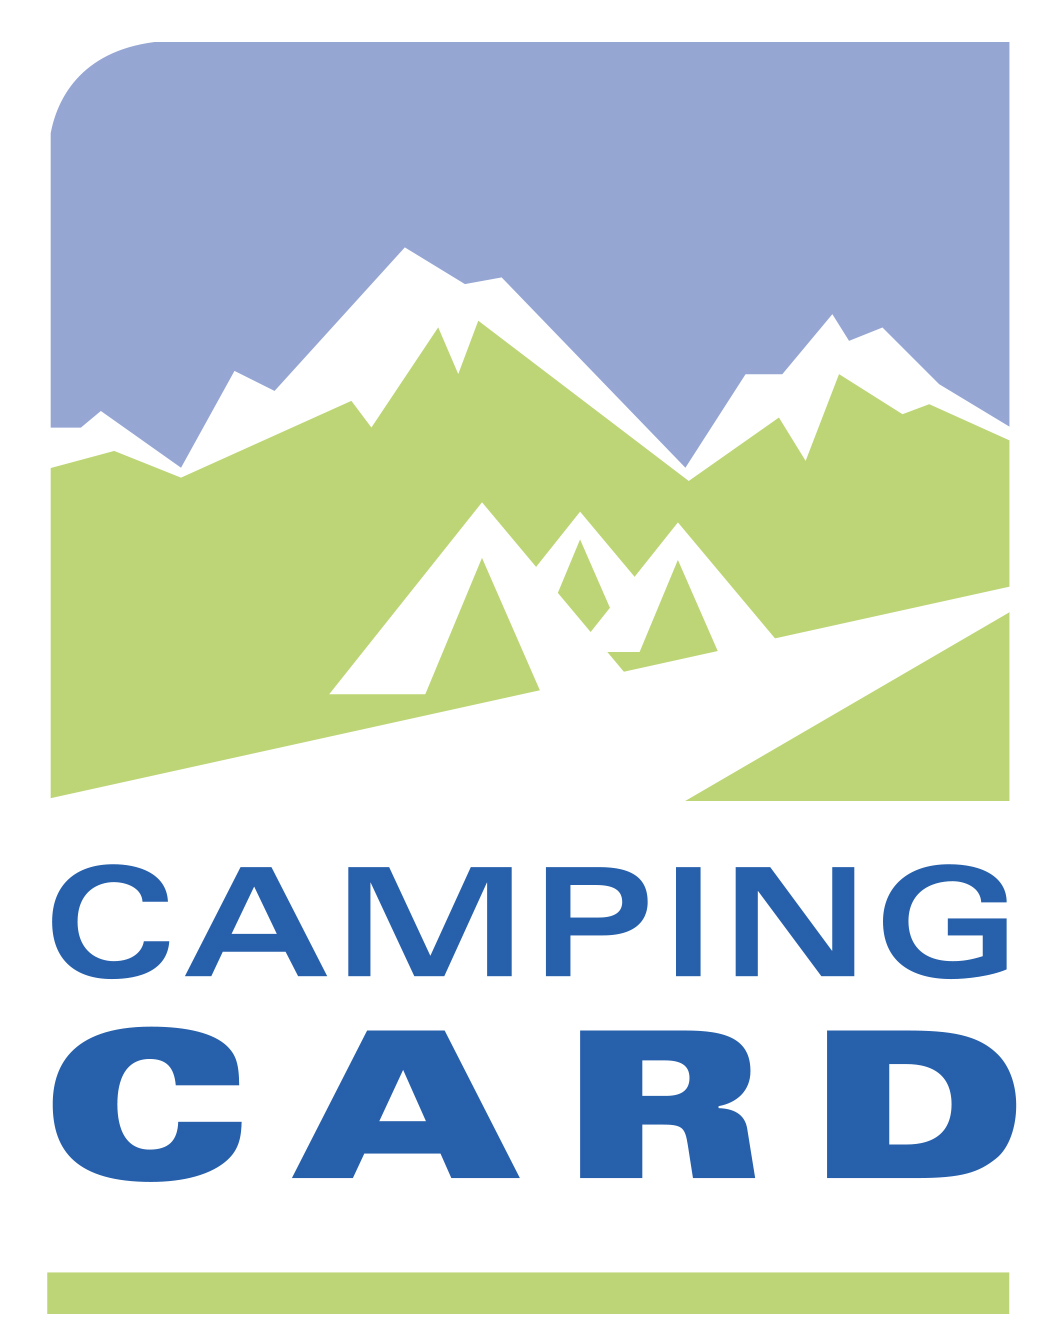 images/media/joomlageek/layereditor/images/Logo-Camping-Card.jpg